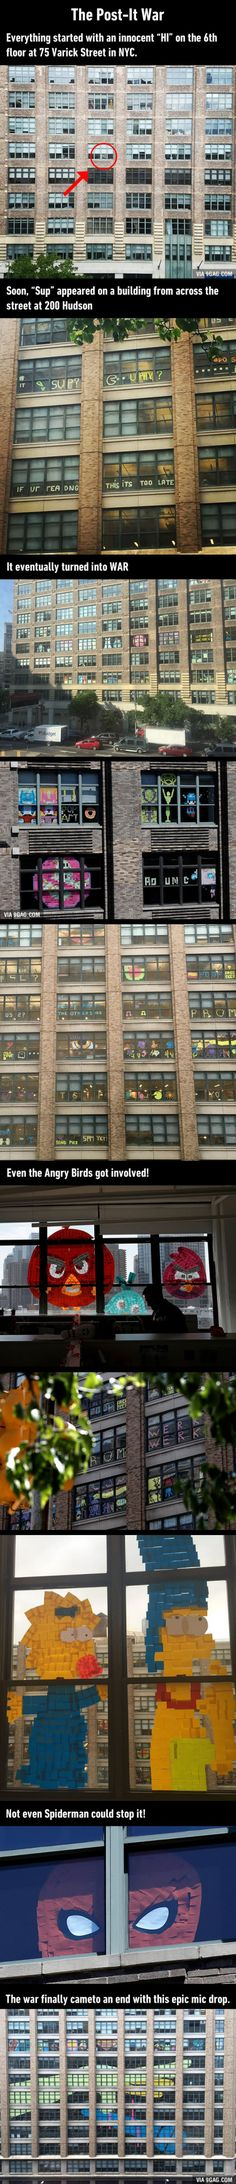 Post-It War Between Two Office Buildings Ends With Epic Finale